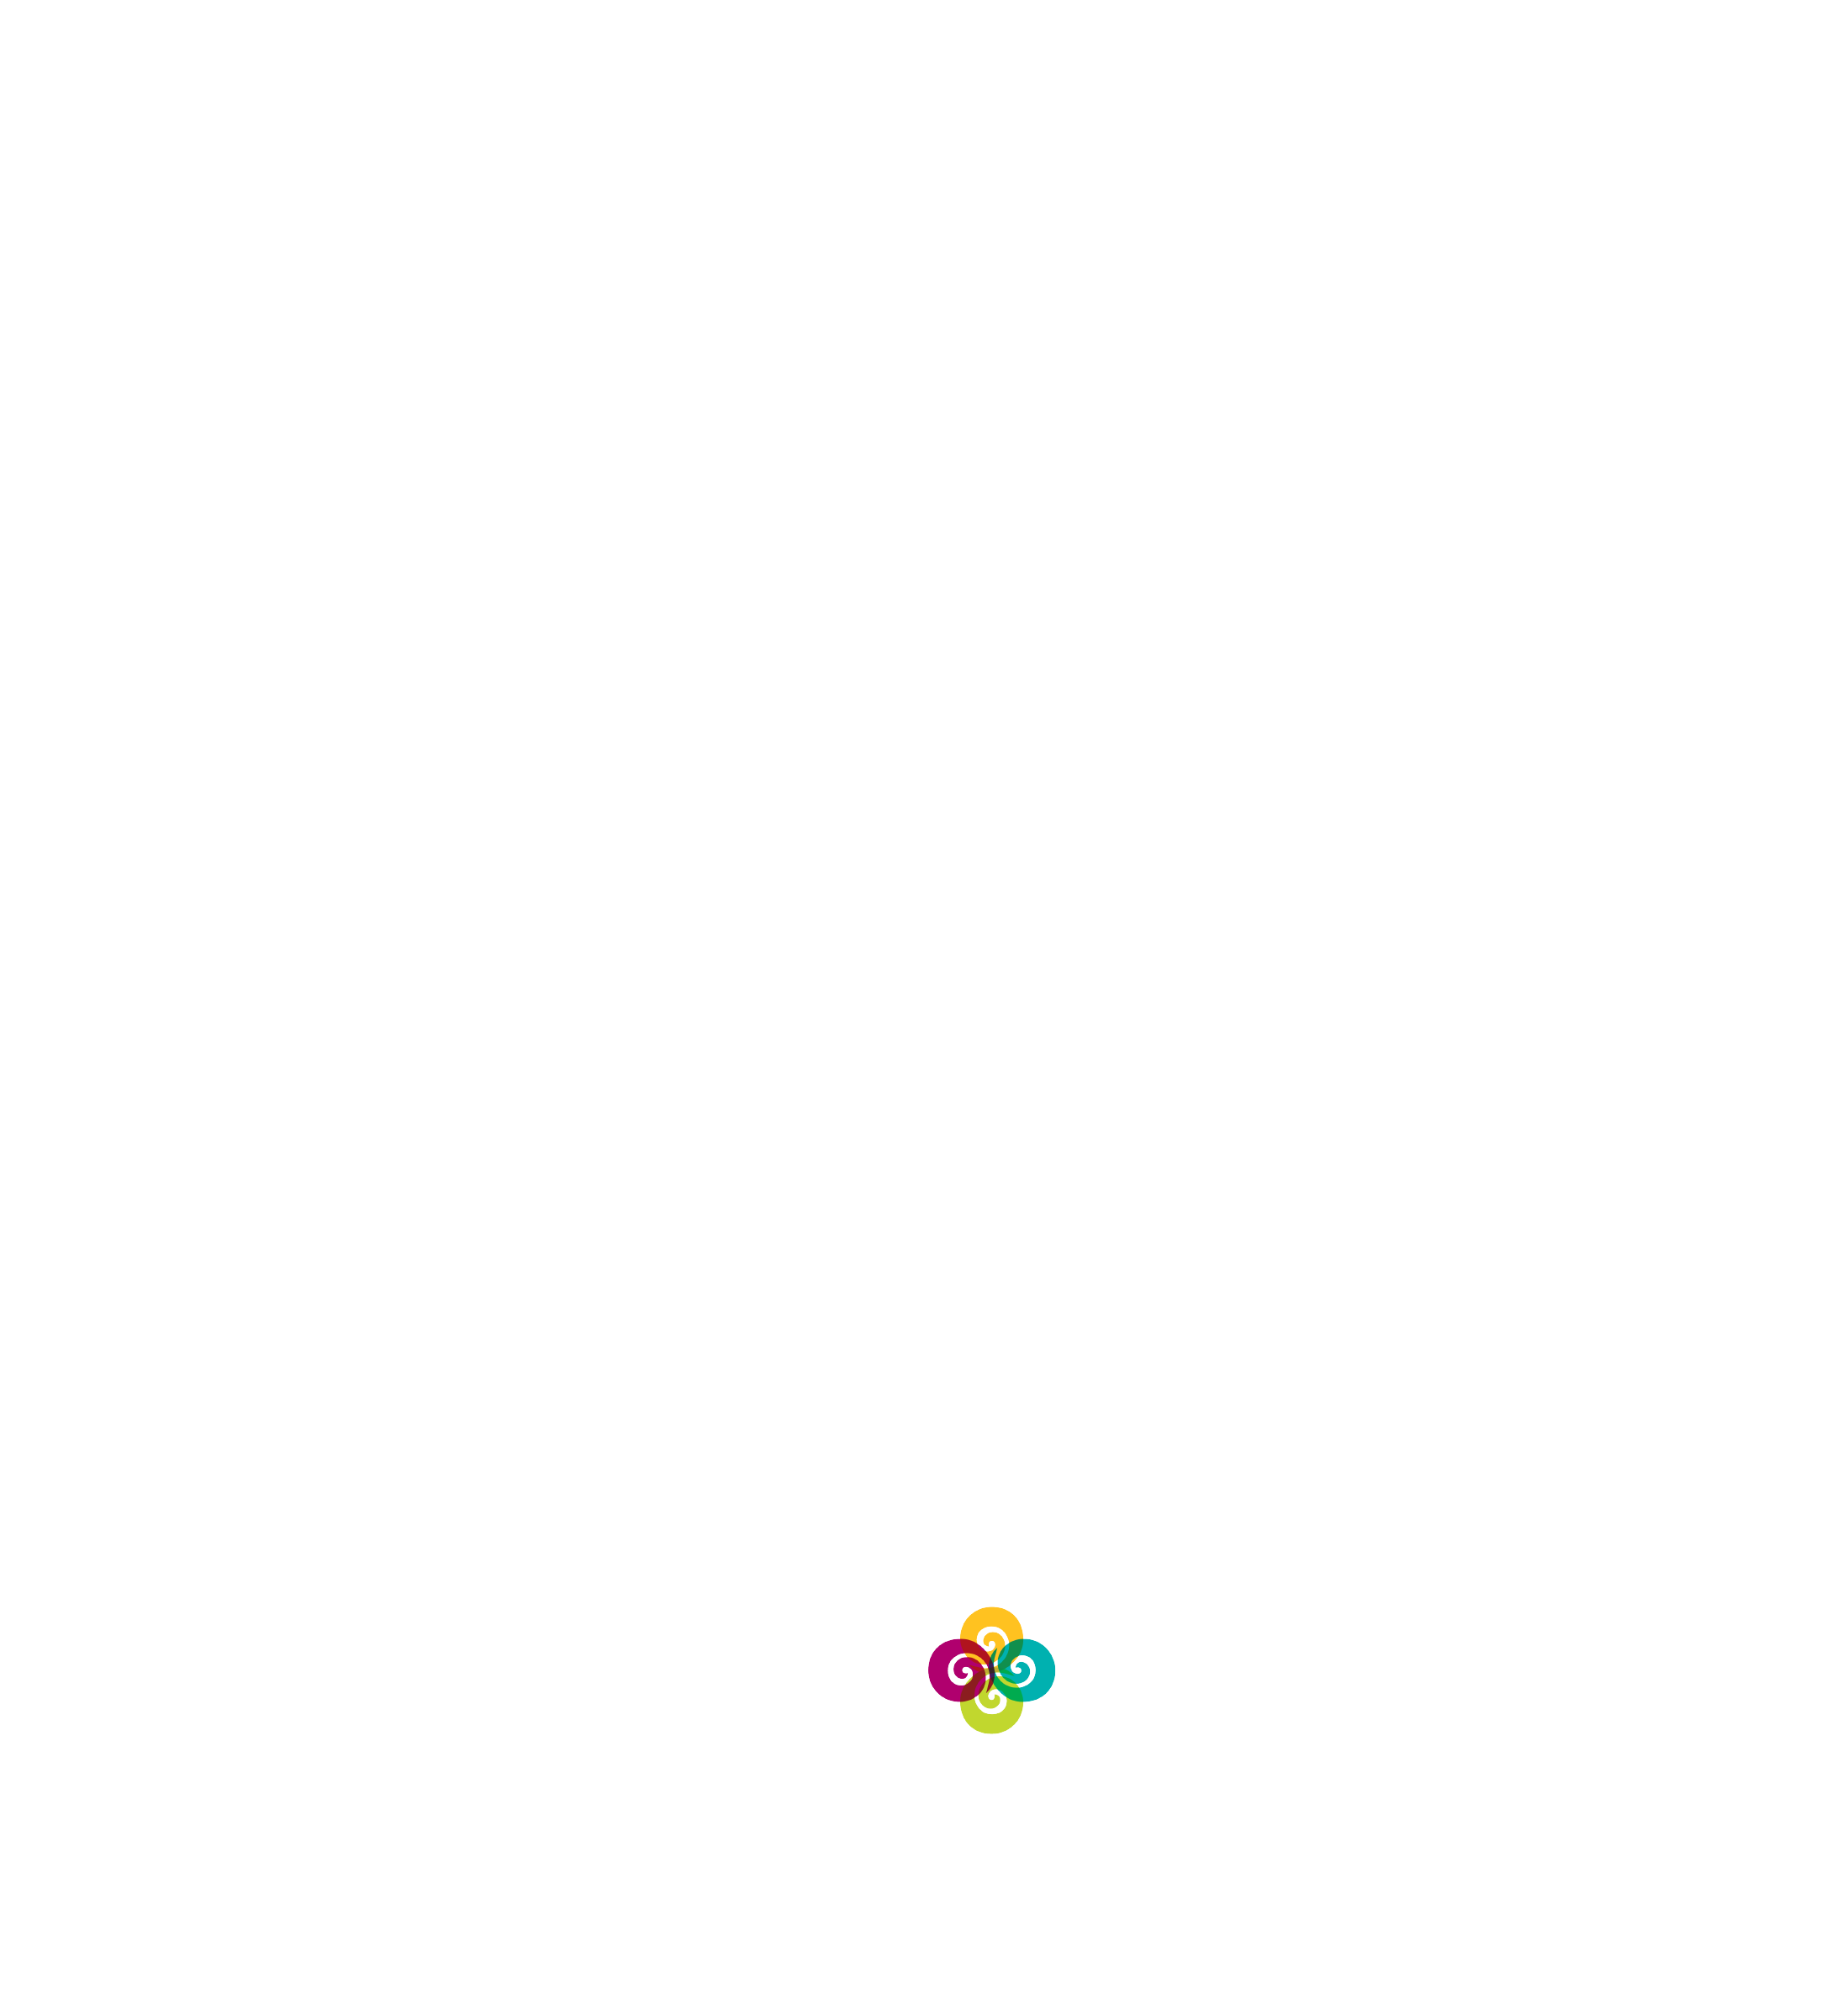 Remote Nation